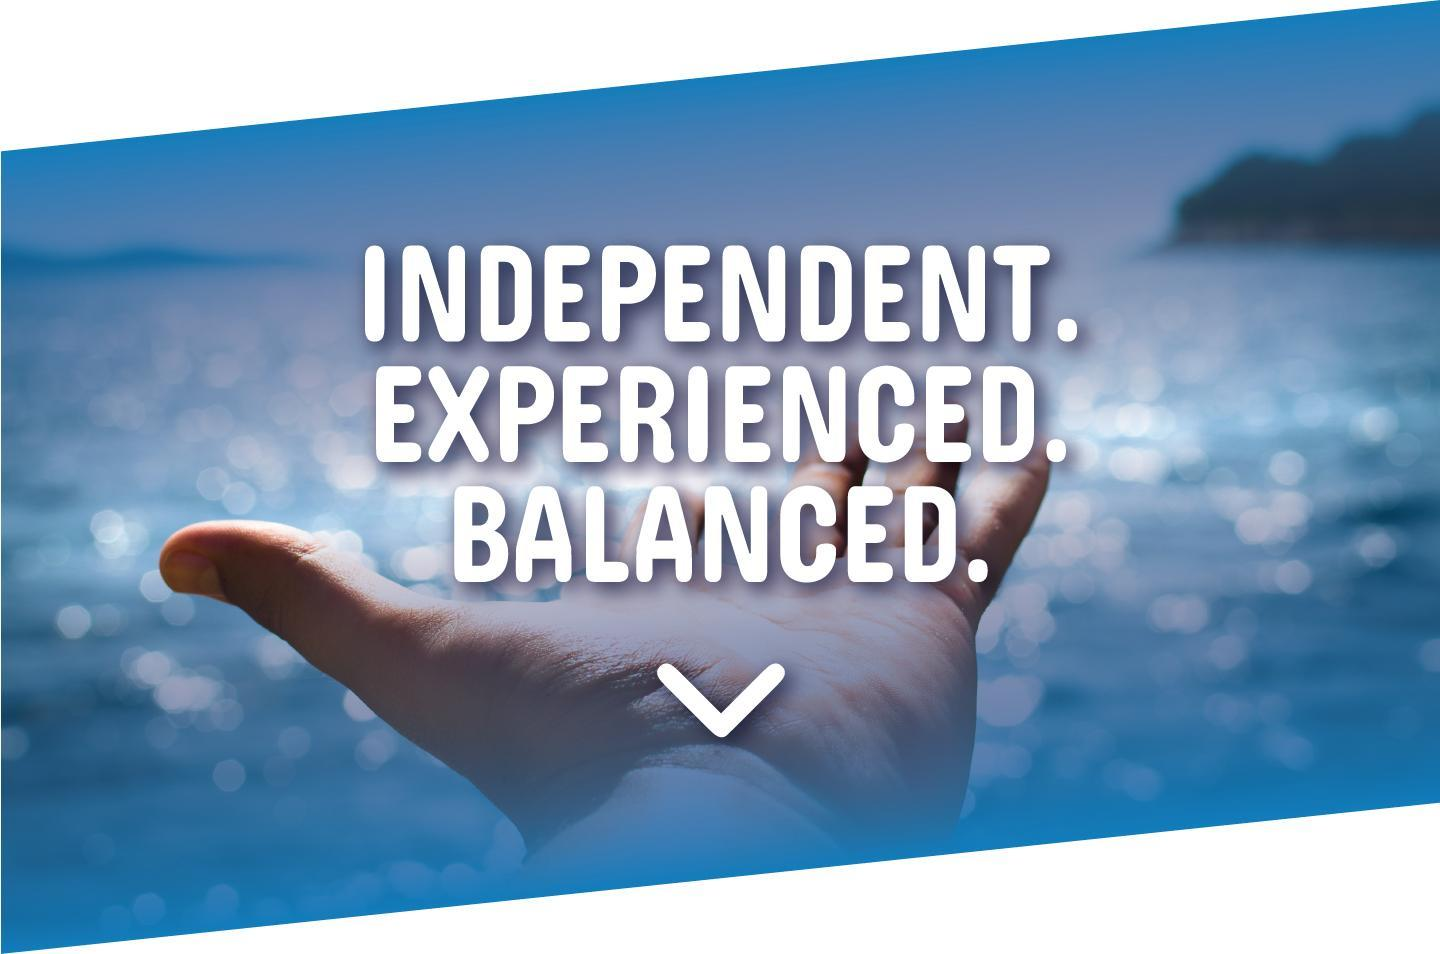 Independent. Experienced. Balanced.